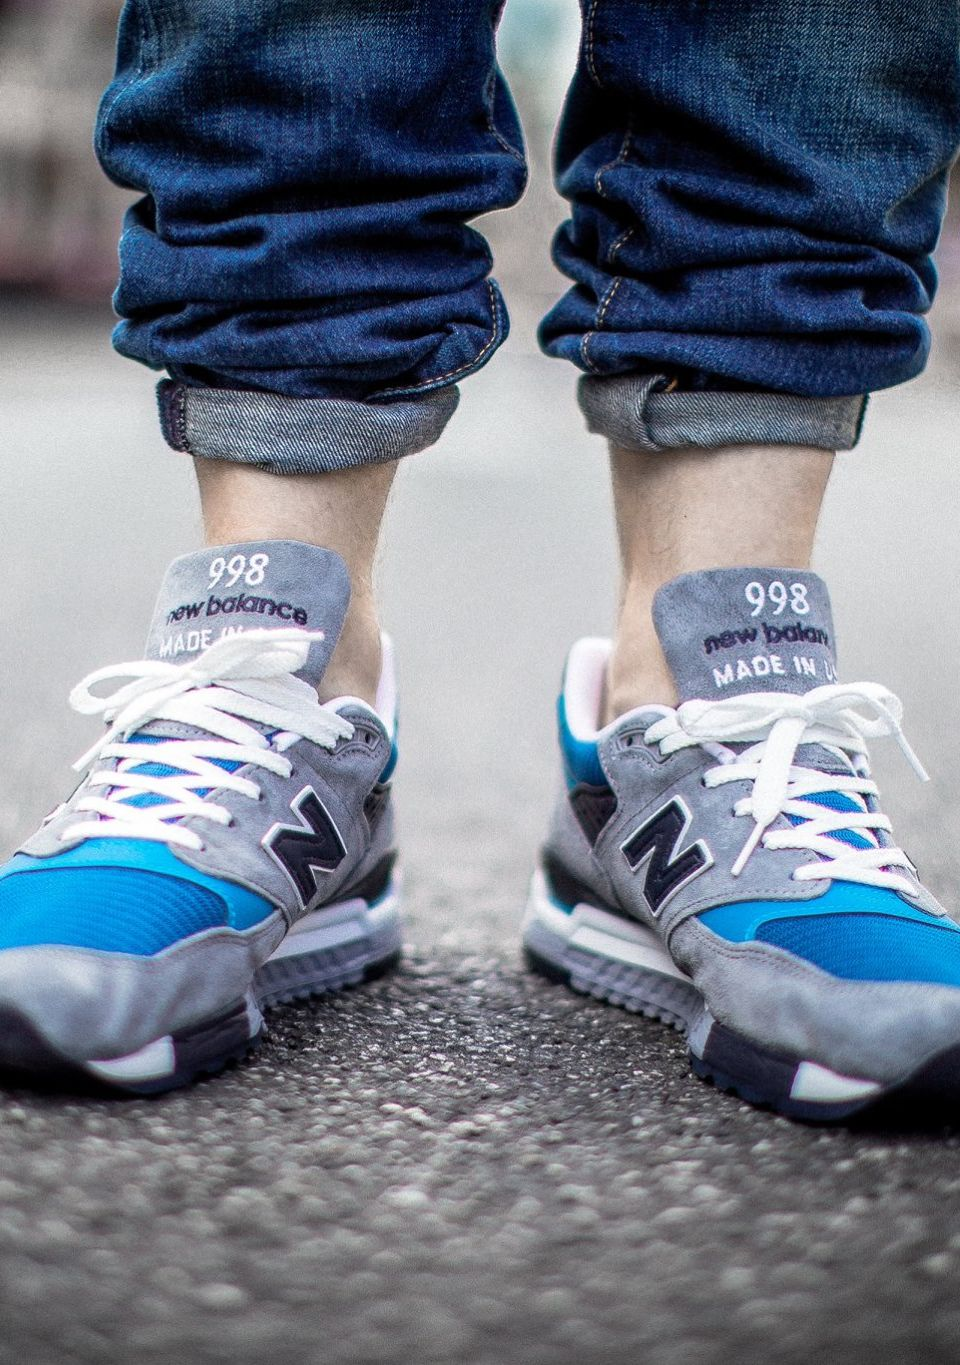 Lógico Tina Marchito  Unstable Fragments | New balance 998, Sneaker fashion week, New balance  sneakers